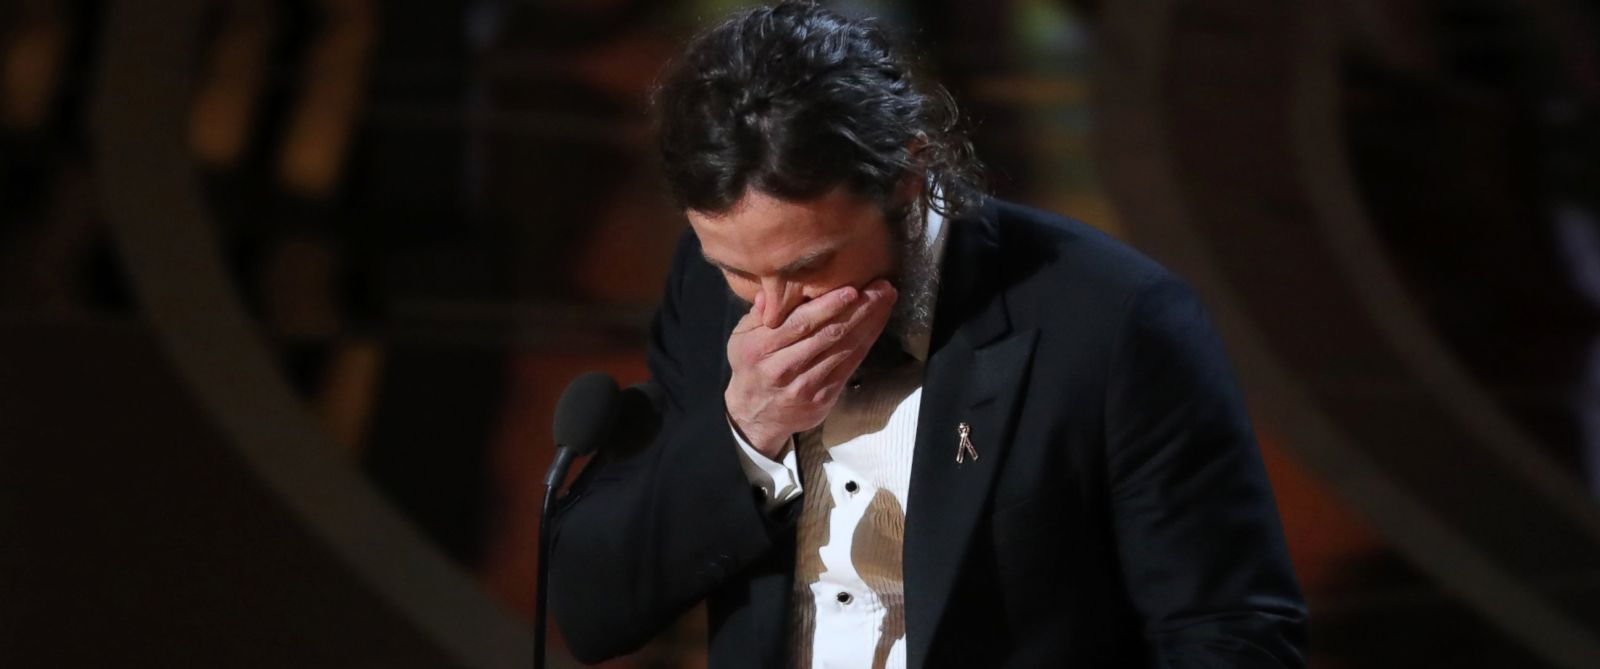 """PHOTO: Casey Affleck reacts as he accepts the Oscar for Best Actor for """"Manchester by the Sea."""""""